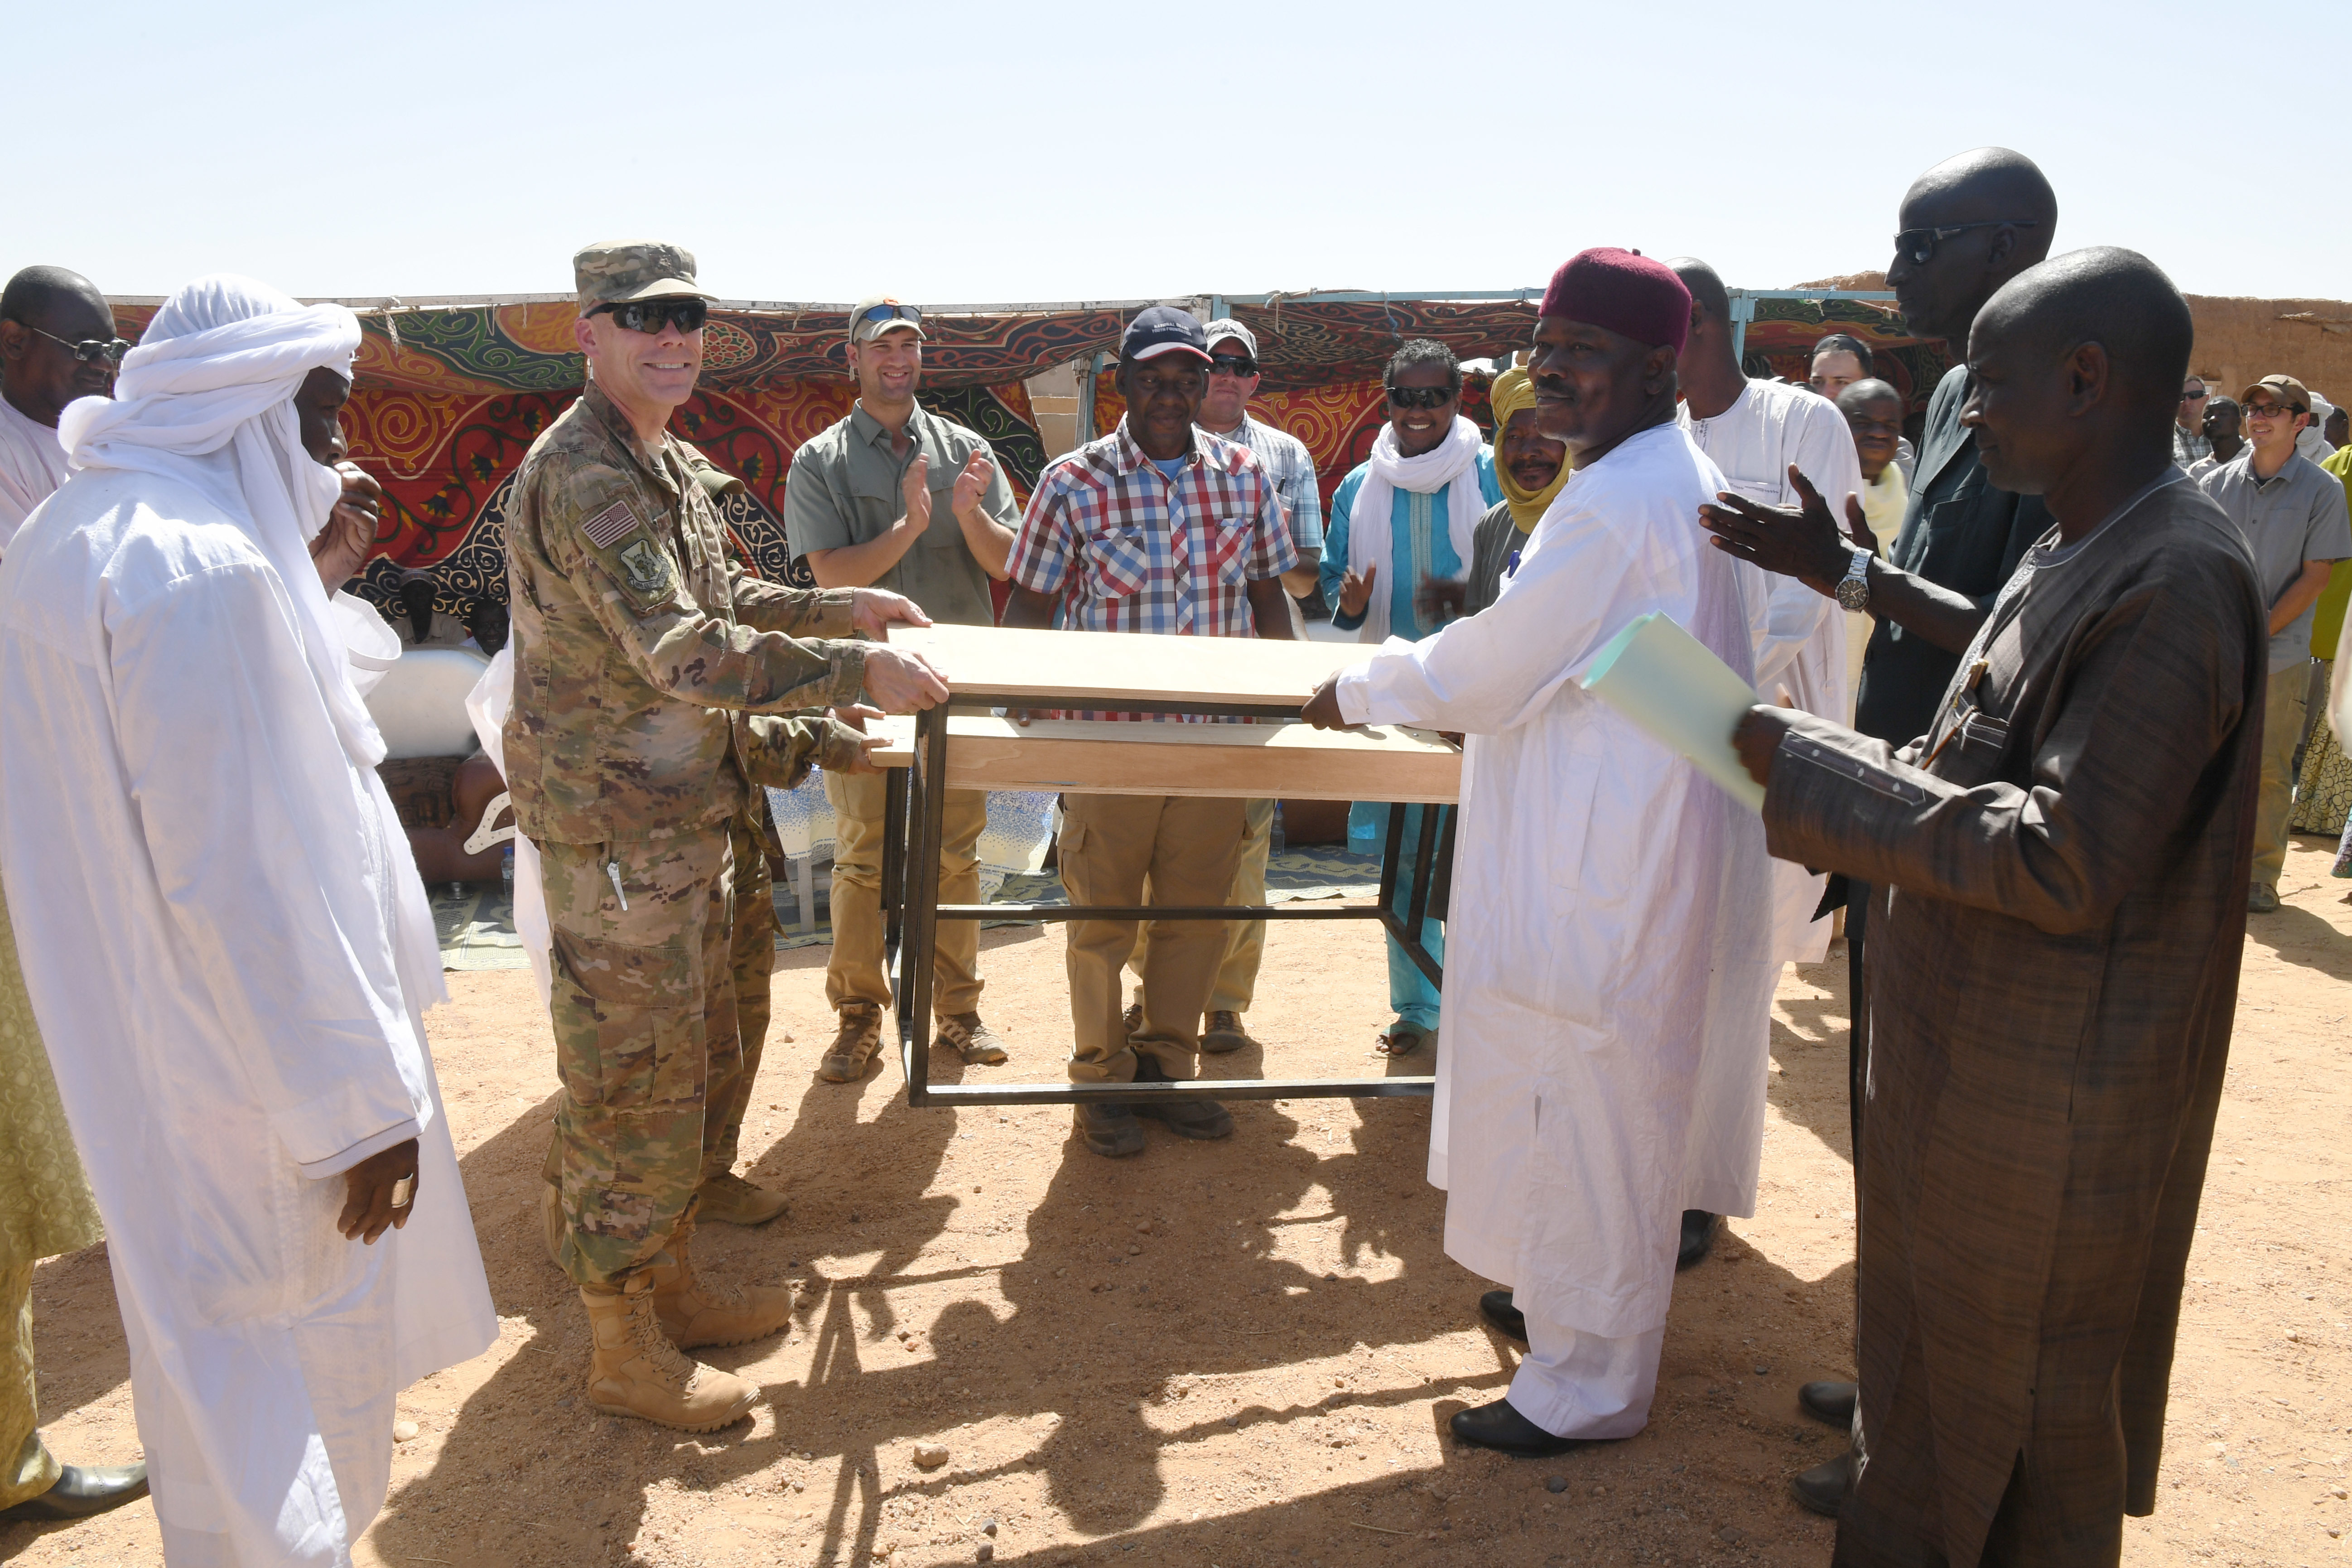 U.S. Air Force Lt. Col. Francis Tyson, 724th Expeditionary Air Base Squadron commander, presents a box of donated supplies to Ahmed Kosa, Agadez second vice mayor, during a ceremony in Agadez, Niger, Oct. 23, 2018. The ceremony